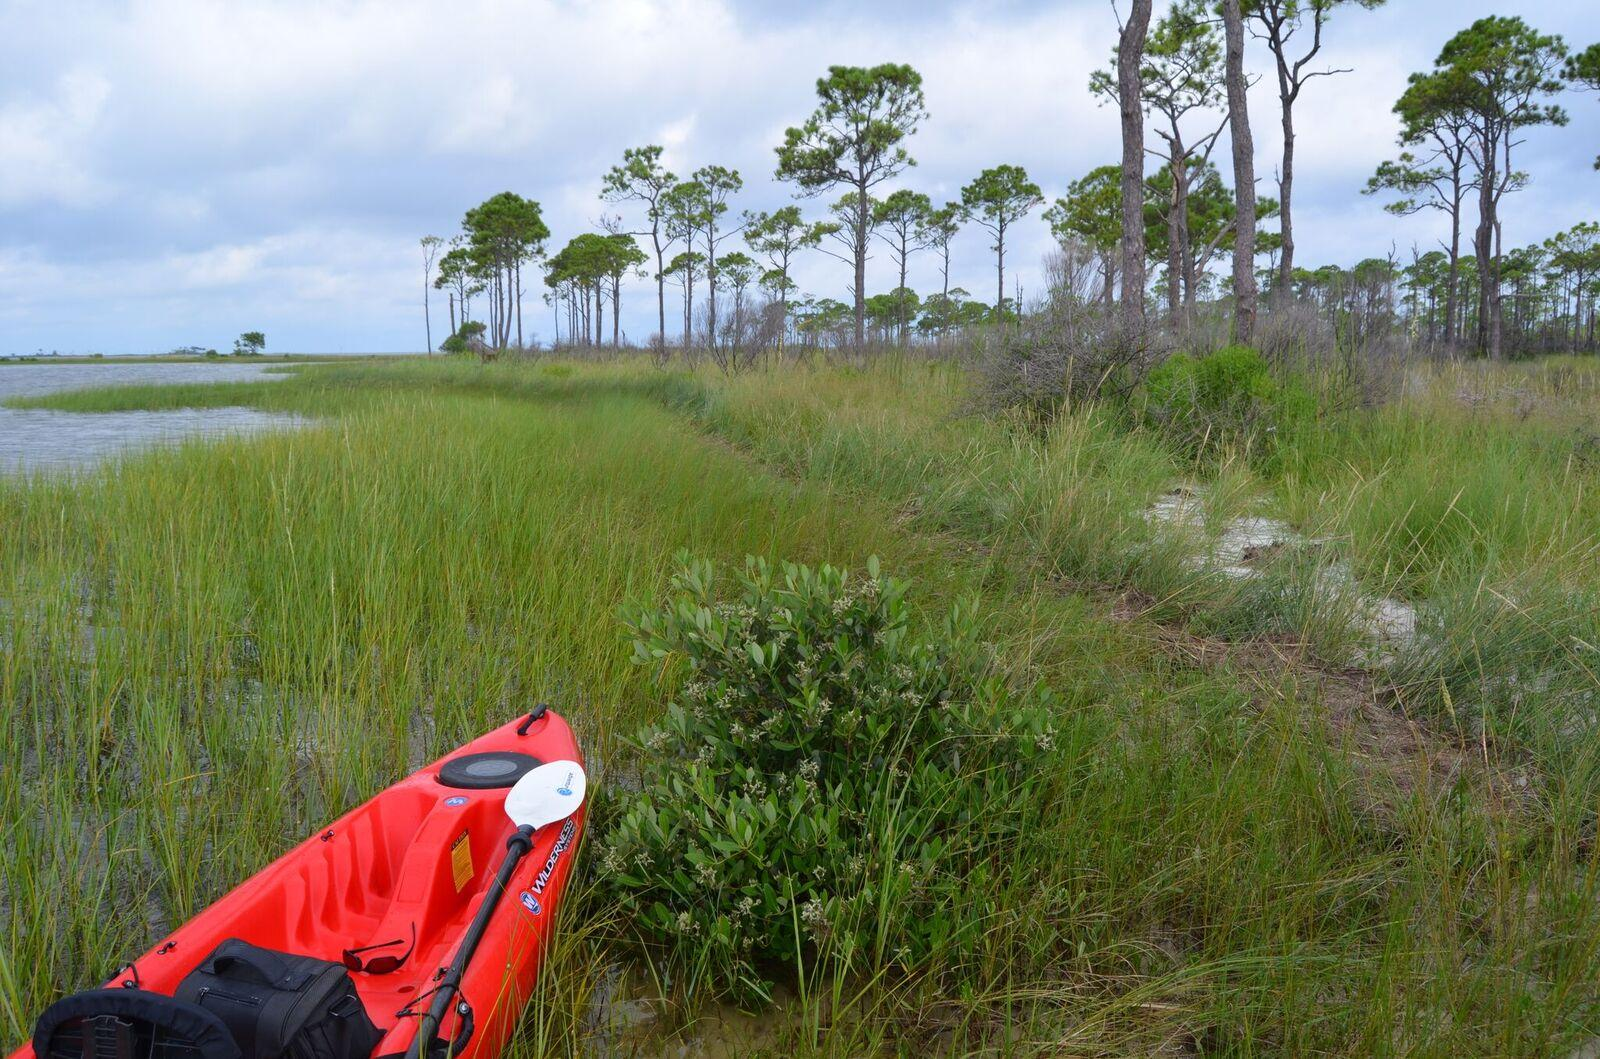 A Mangrove Sprouting Among Marsh Gres Off The Coast Of Florida Panhandle